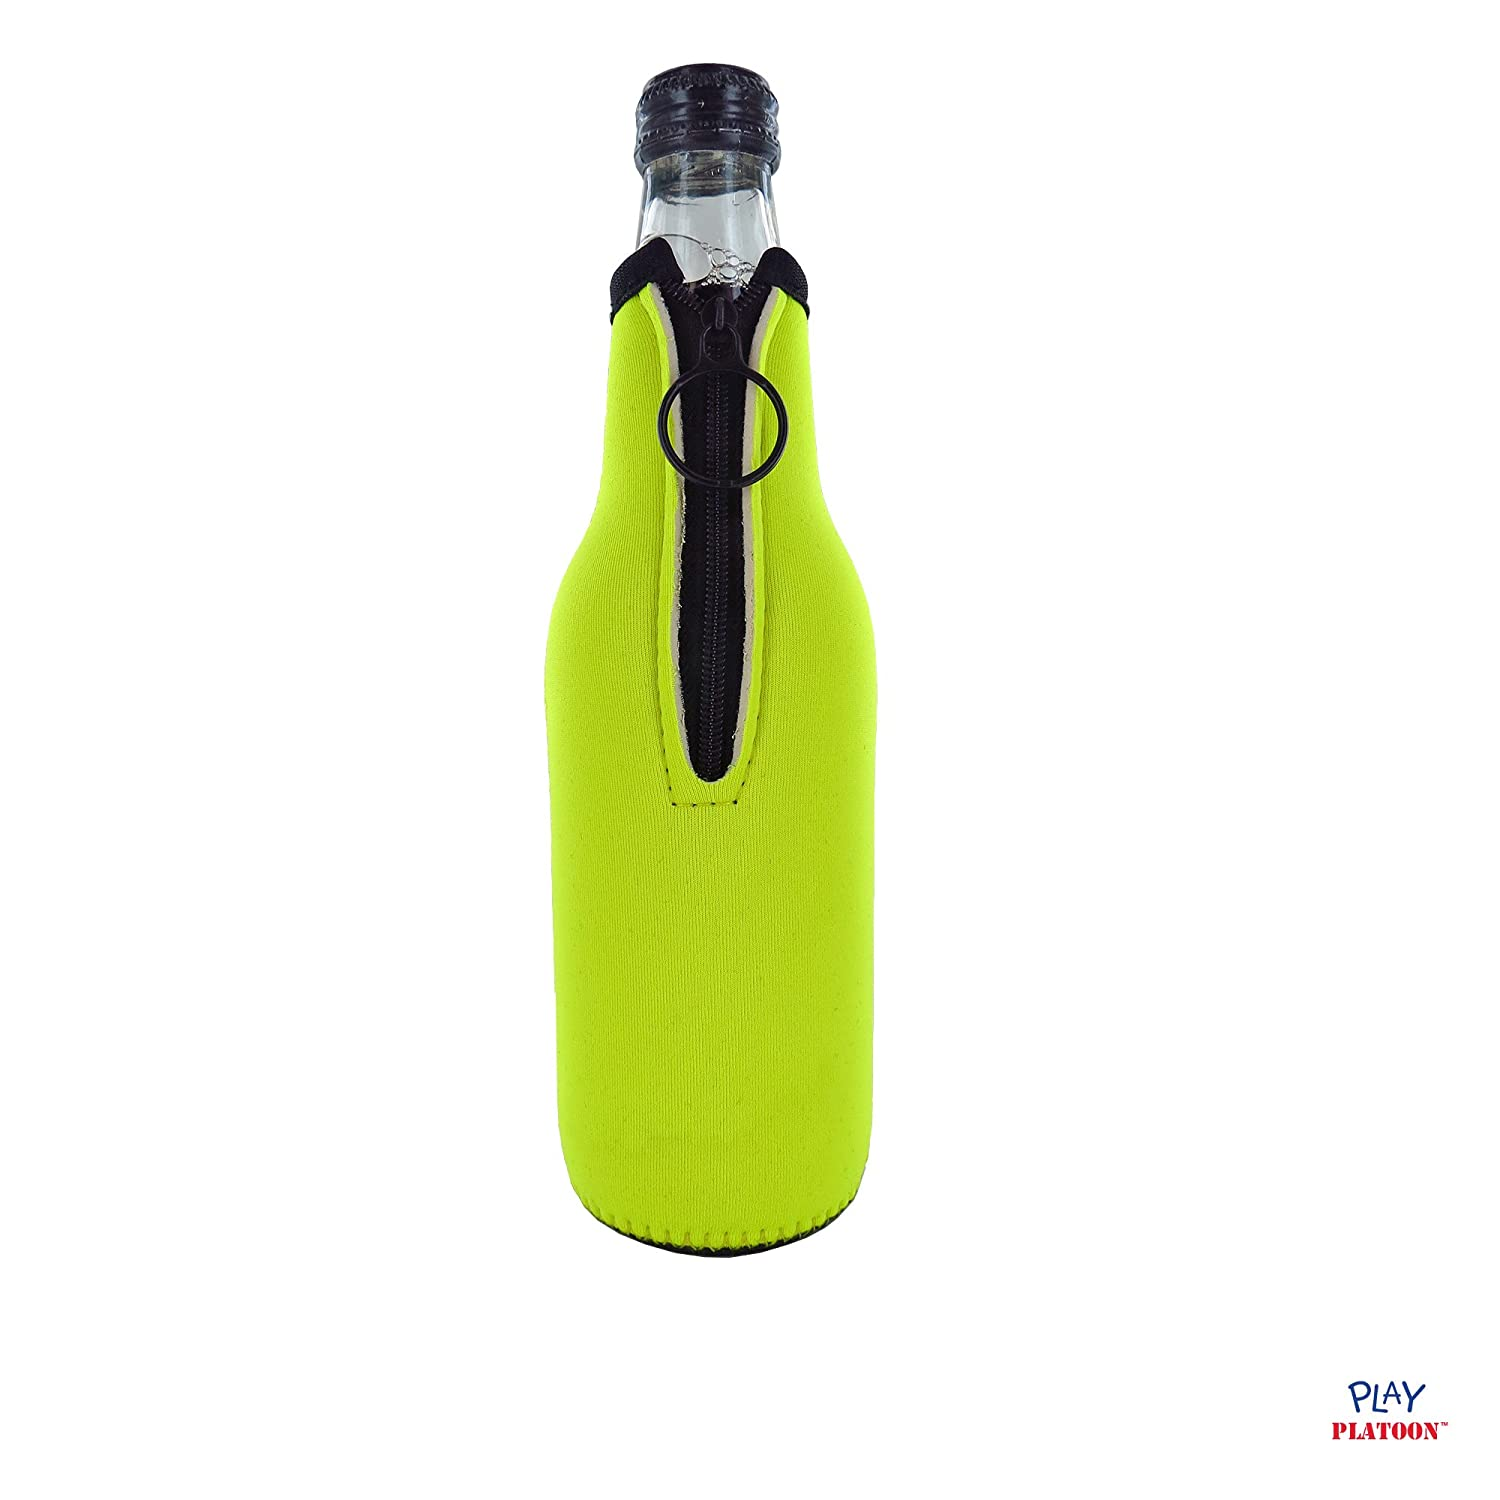 Collapsible Neoprene Sleeve with Zipper Beer Bottle Cooler Sleeves for Party